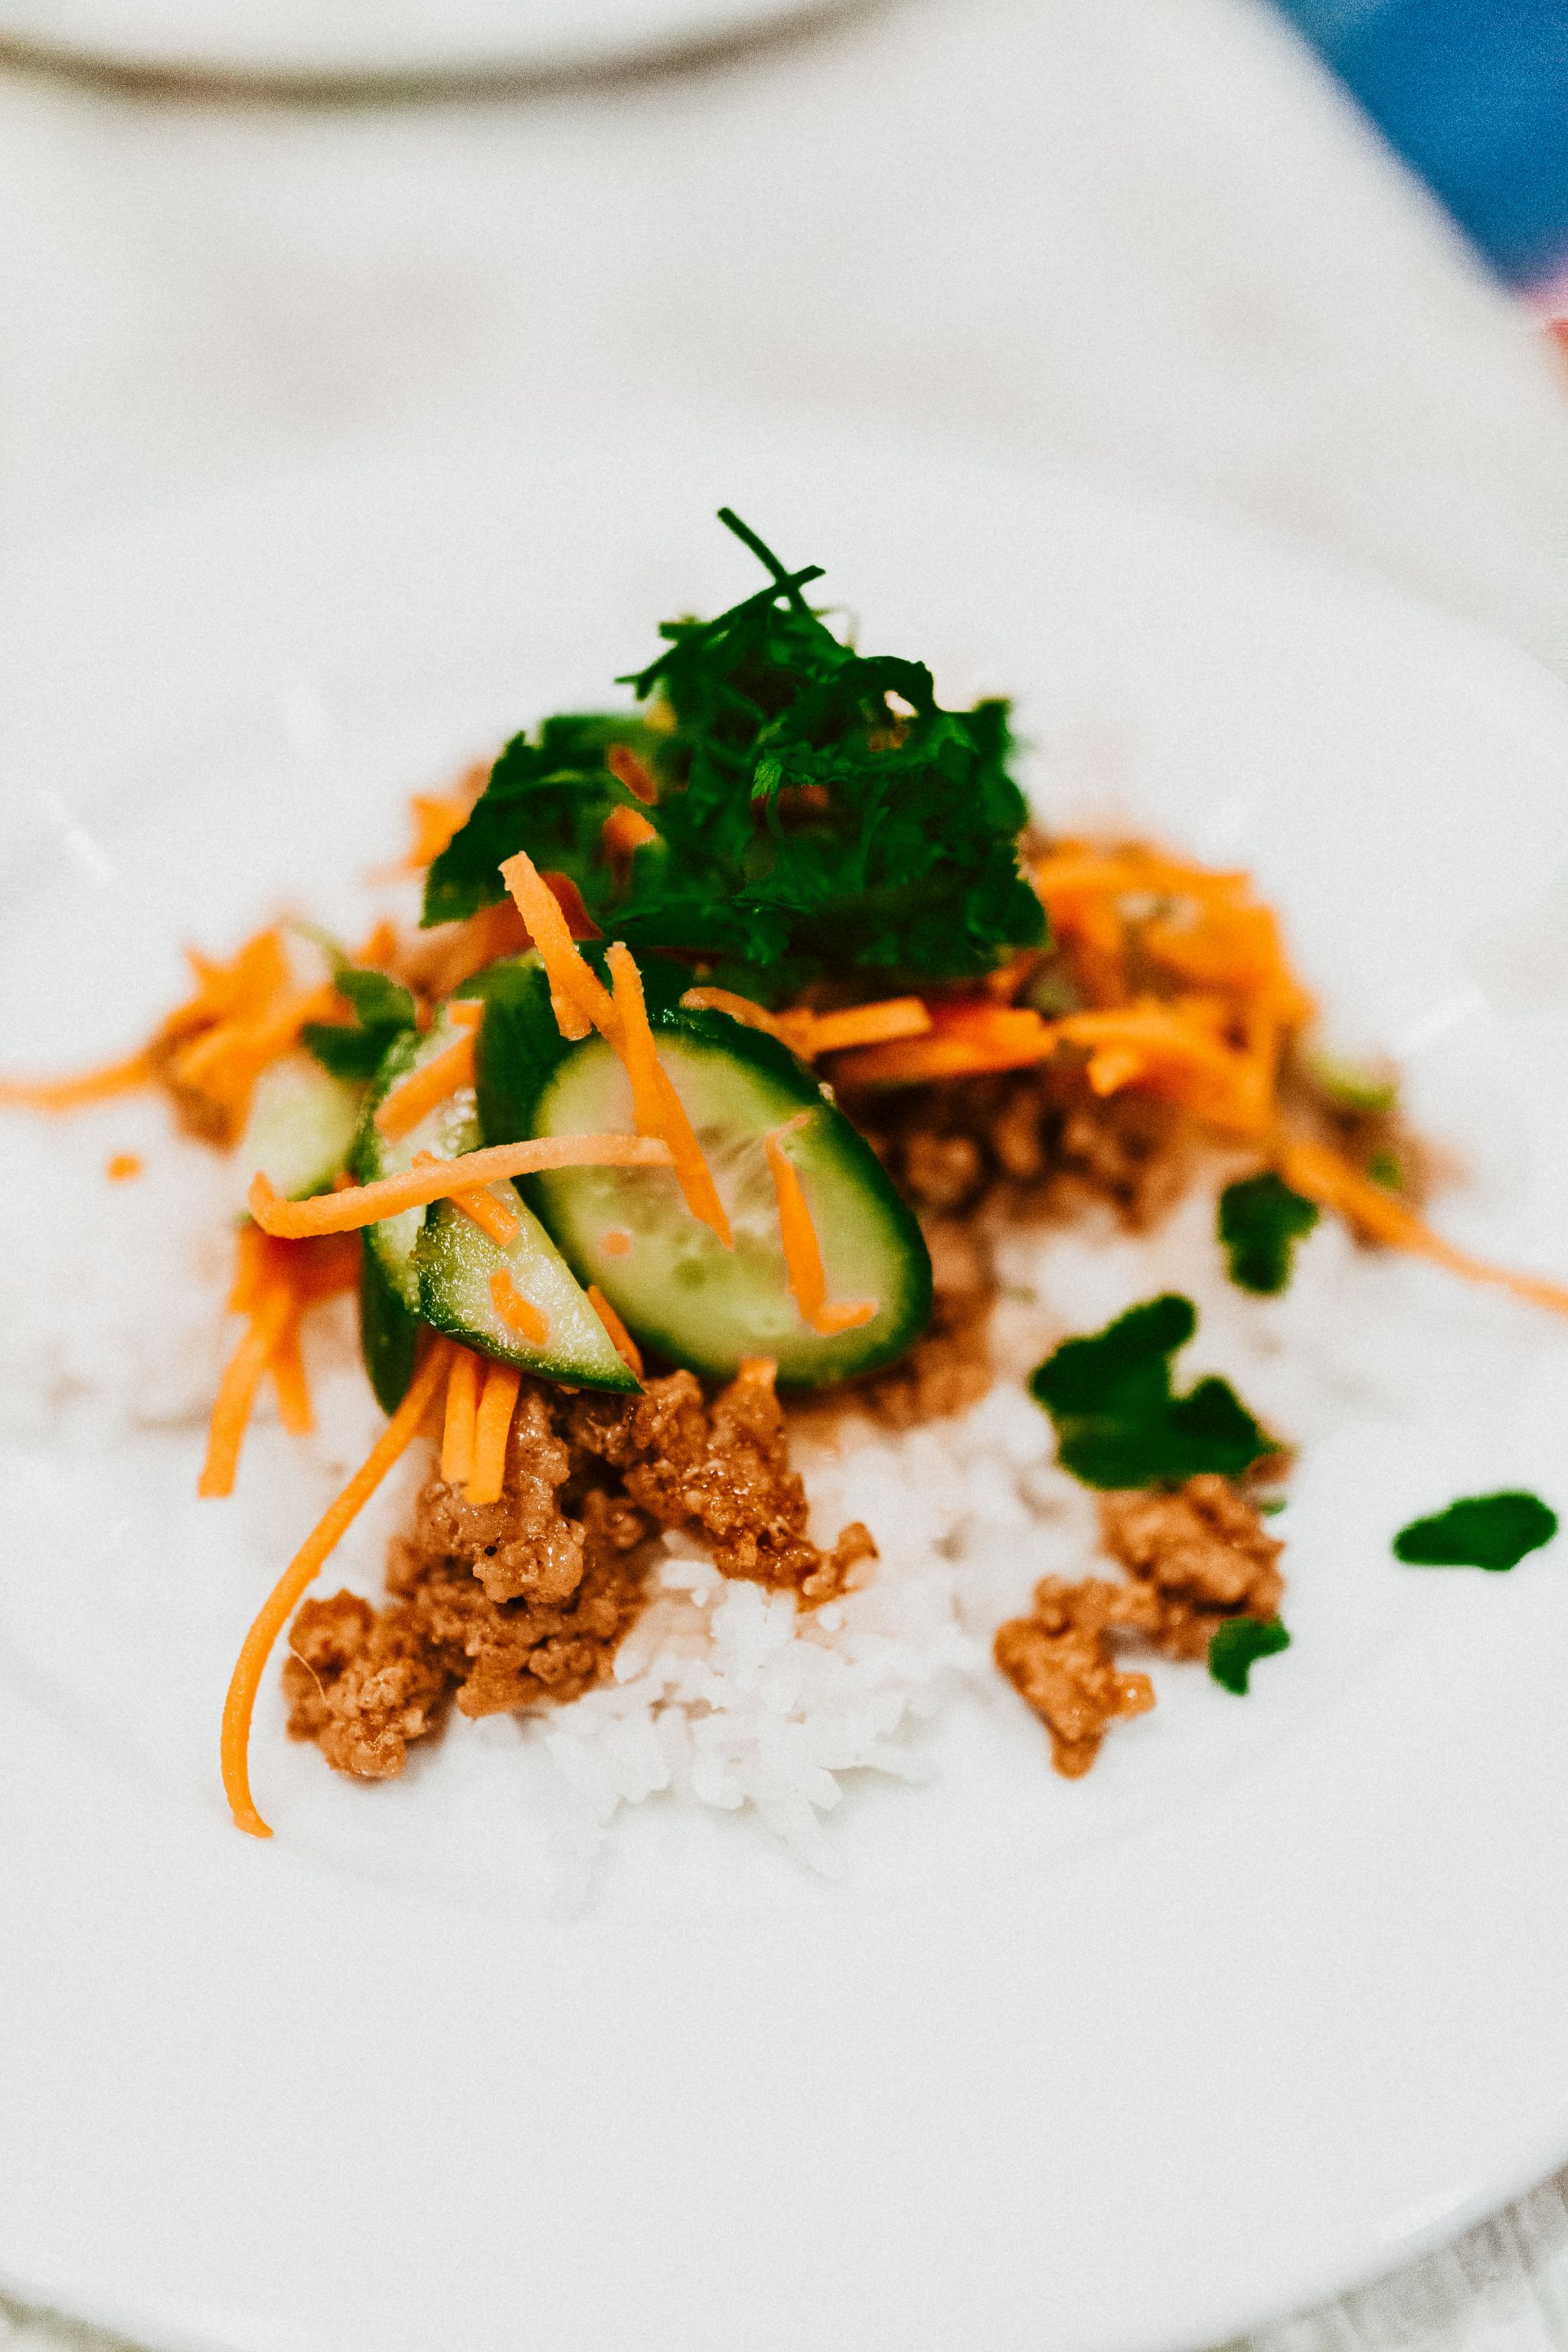 home chef kit, banh mi recipe, Only Tip you need in cooking, Home Chef in Marianos, Jennifer Worman, Chicago Food Blogger, Best Food at Home, Cooking Recipes, Marianos, Chicago Food, chicago mom blogger